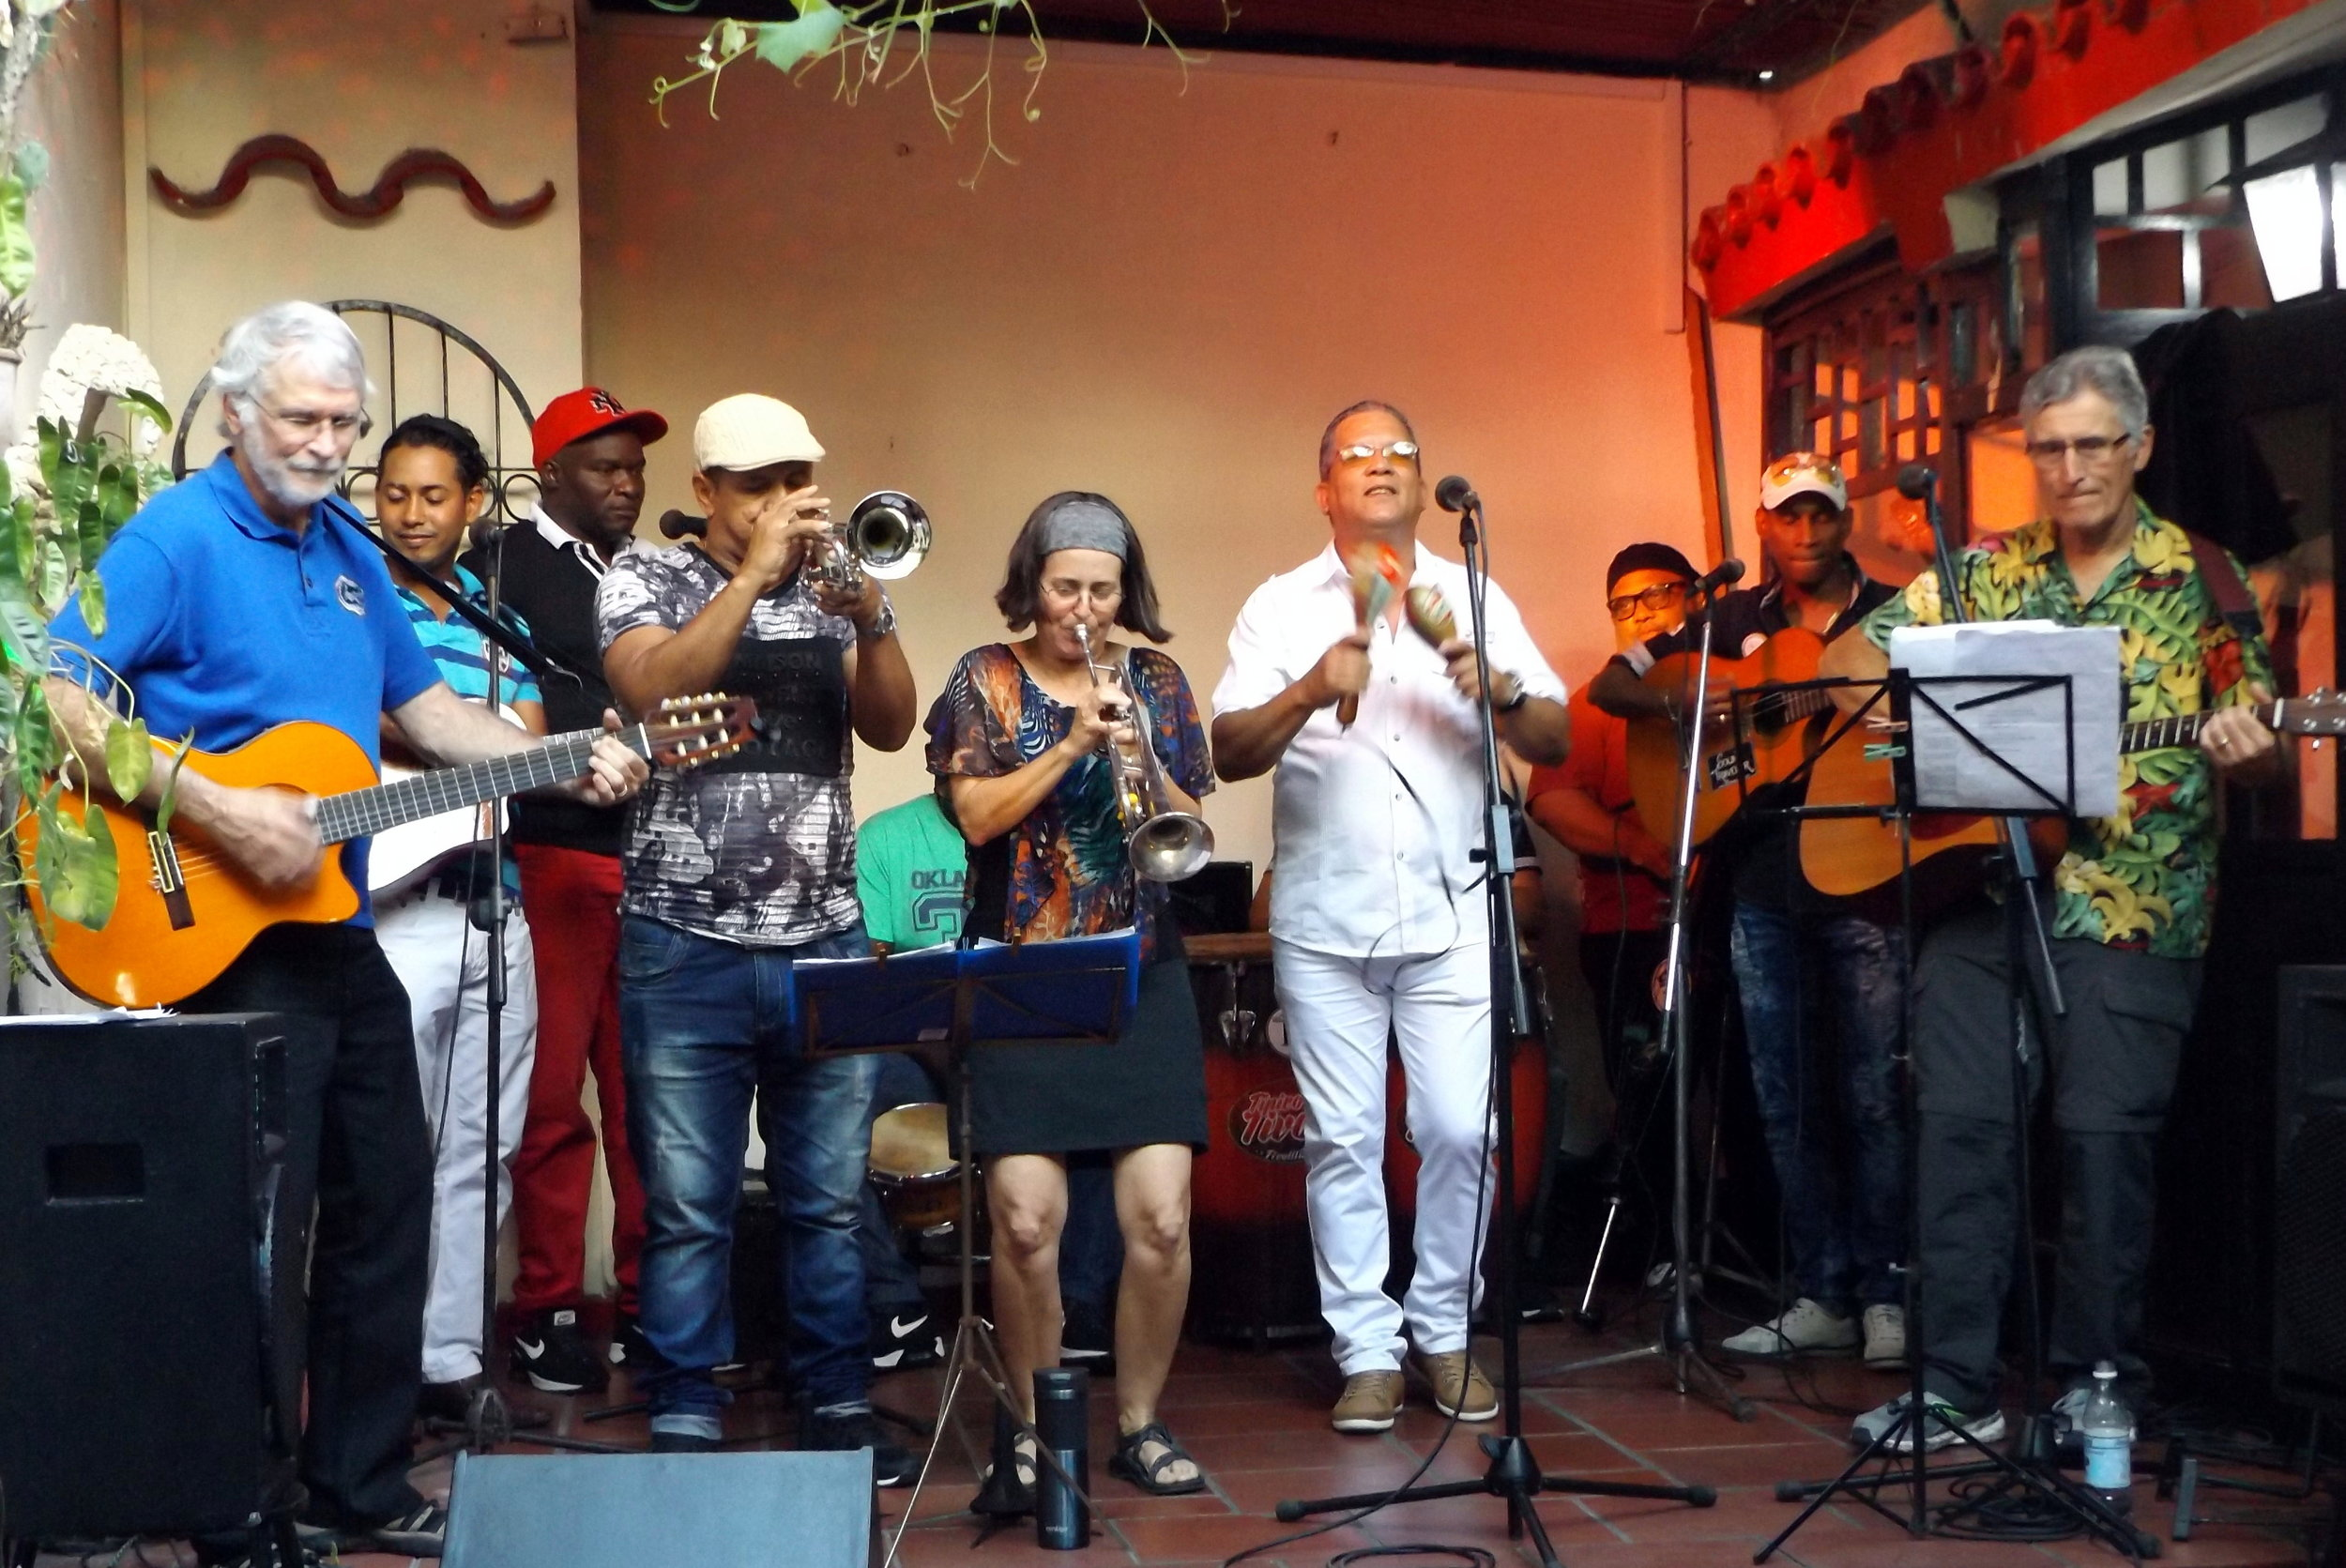 Performance in Santiago de Cuba at Patio de Los Dos Abuelos with Septeto Tipico Tivoli band, March 2018!